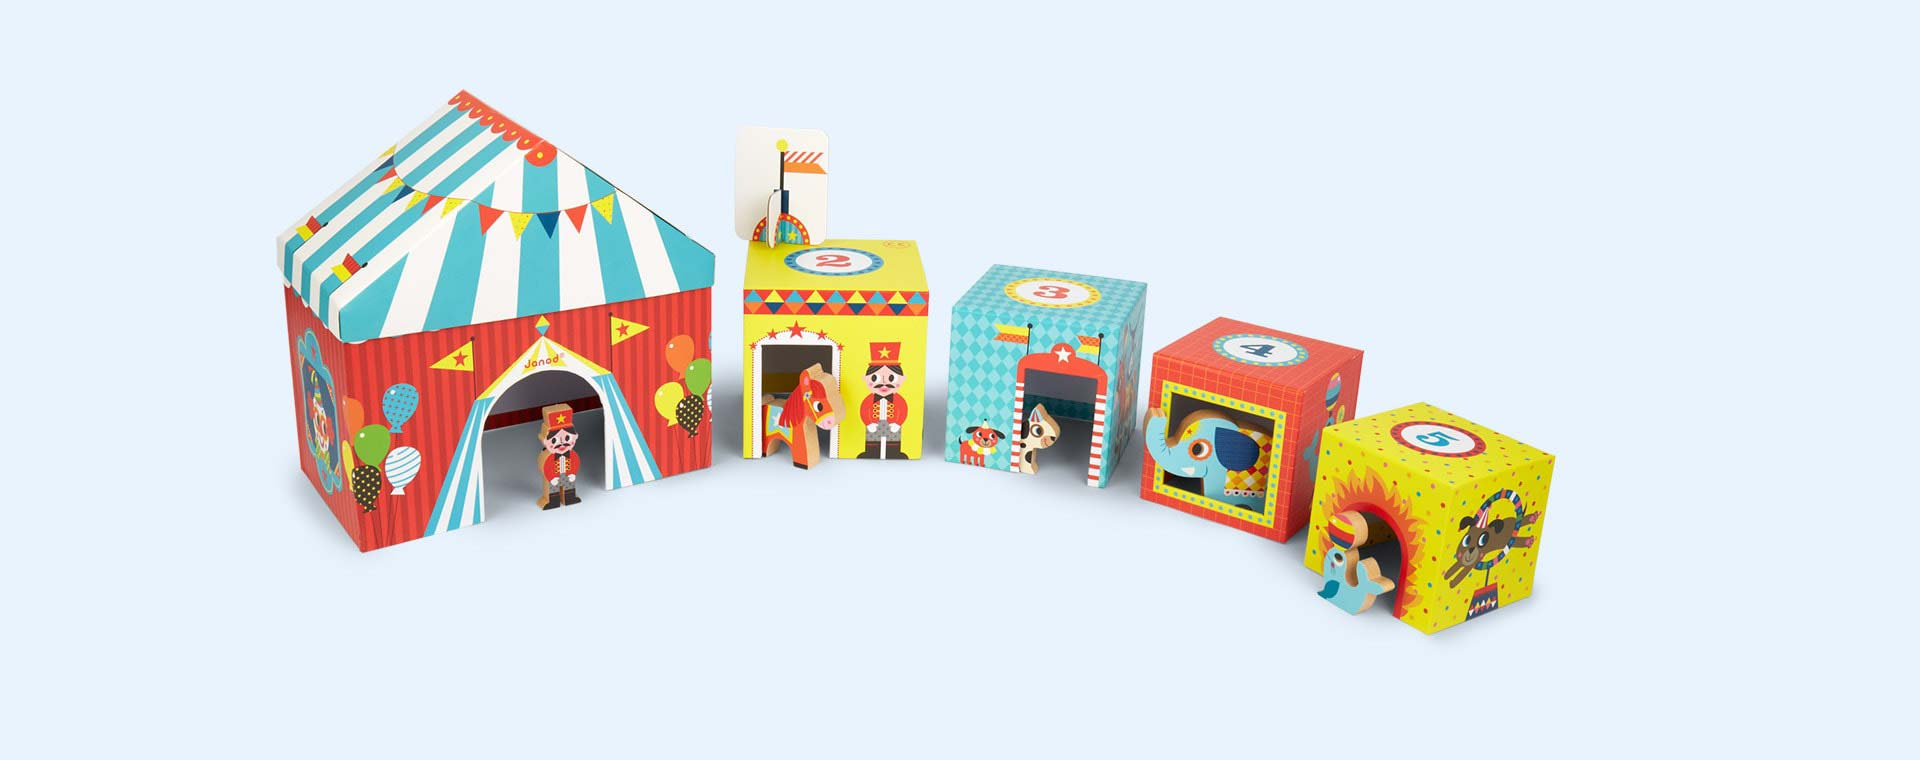 Circus Janod Multikub Stacking & Sorting Blocks